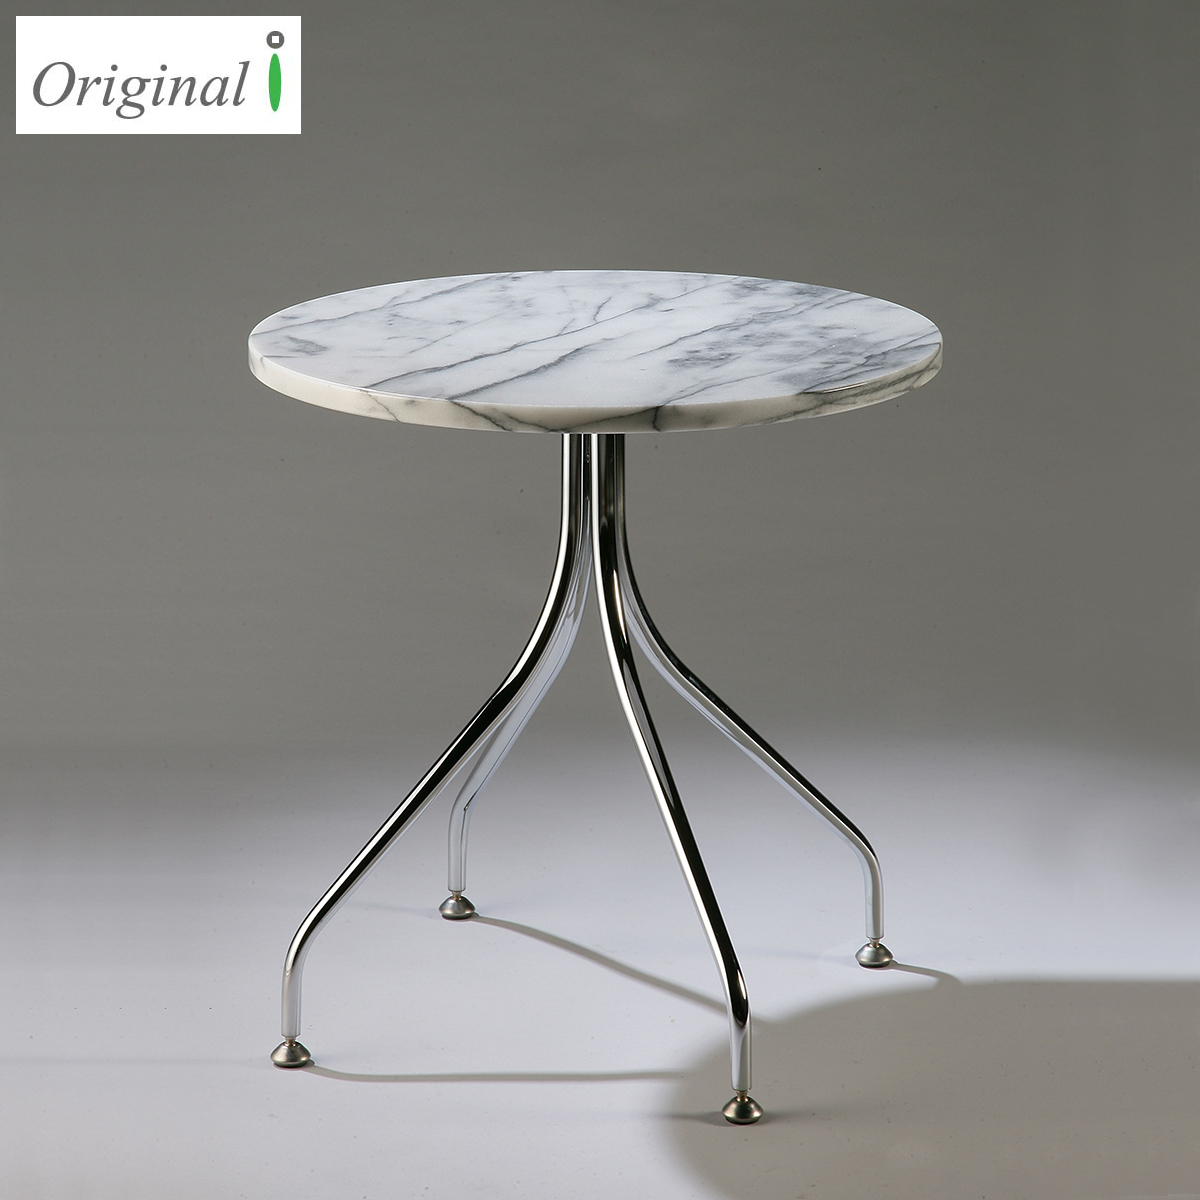 Round Marble Top Chromed Metal Legs Center Corner Sofa Table Coffee Table Side End Table